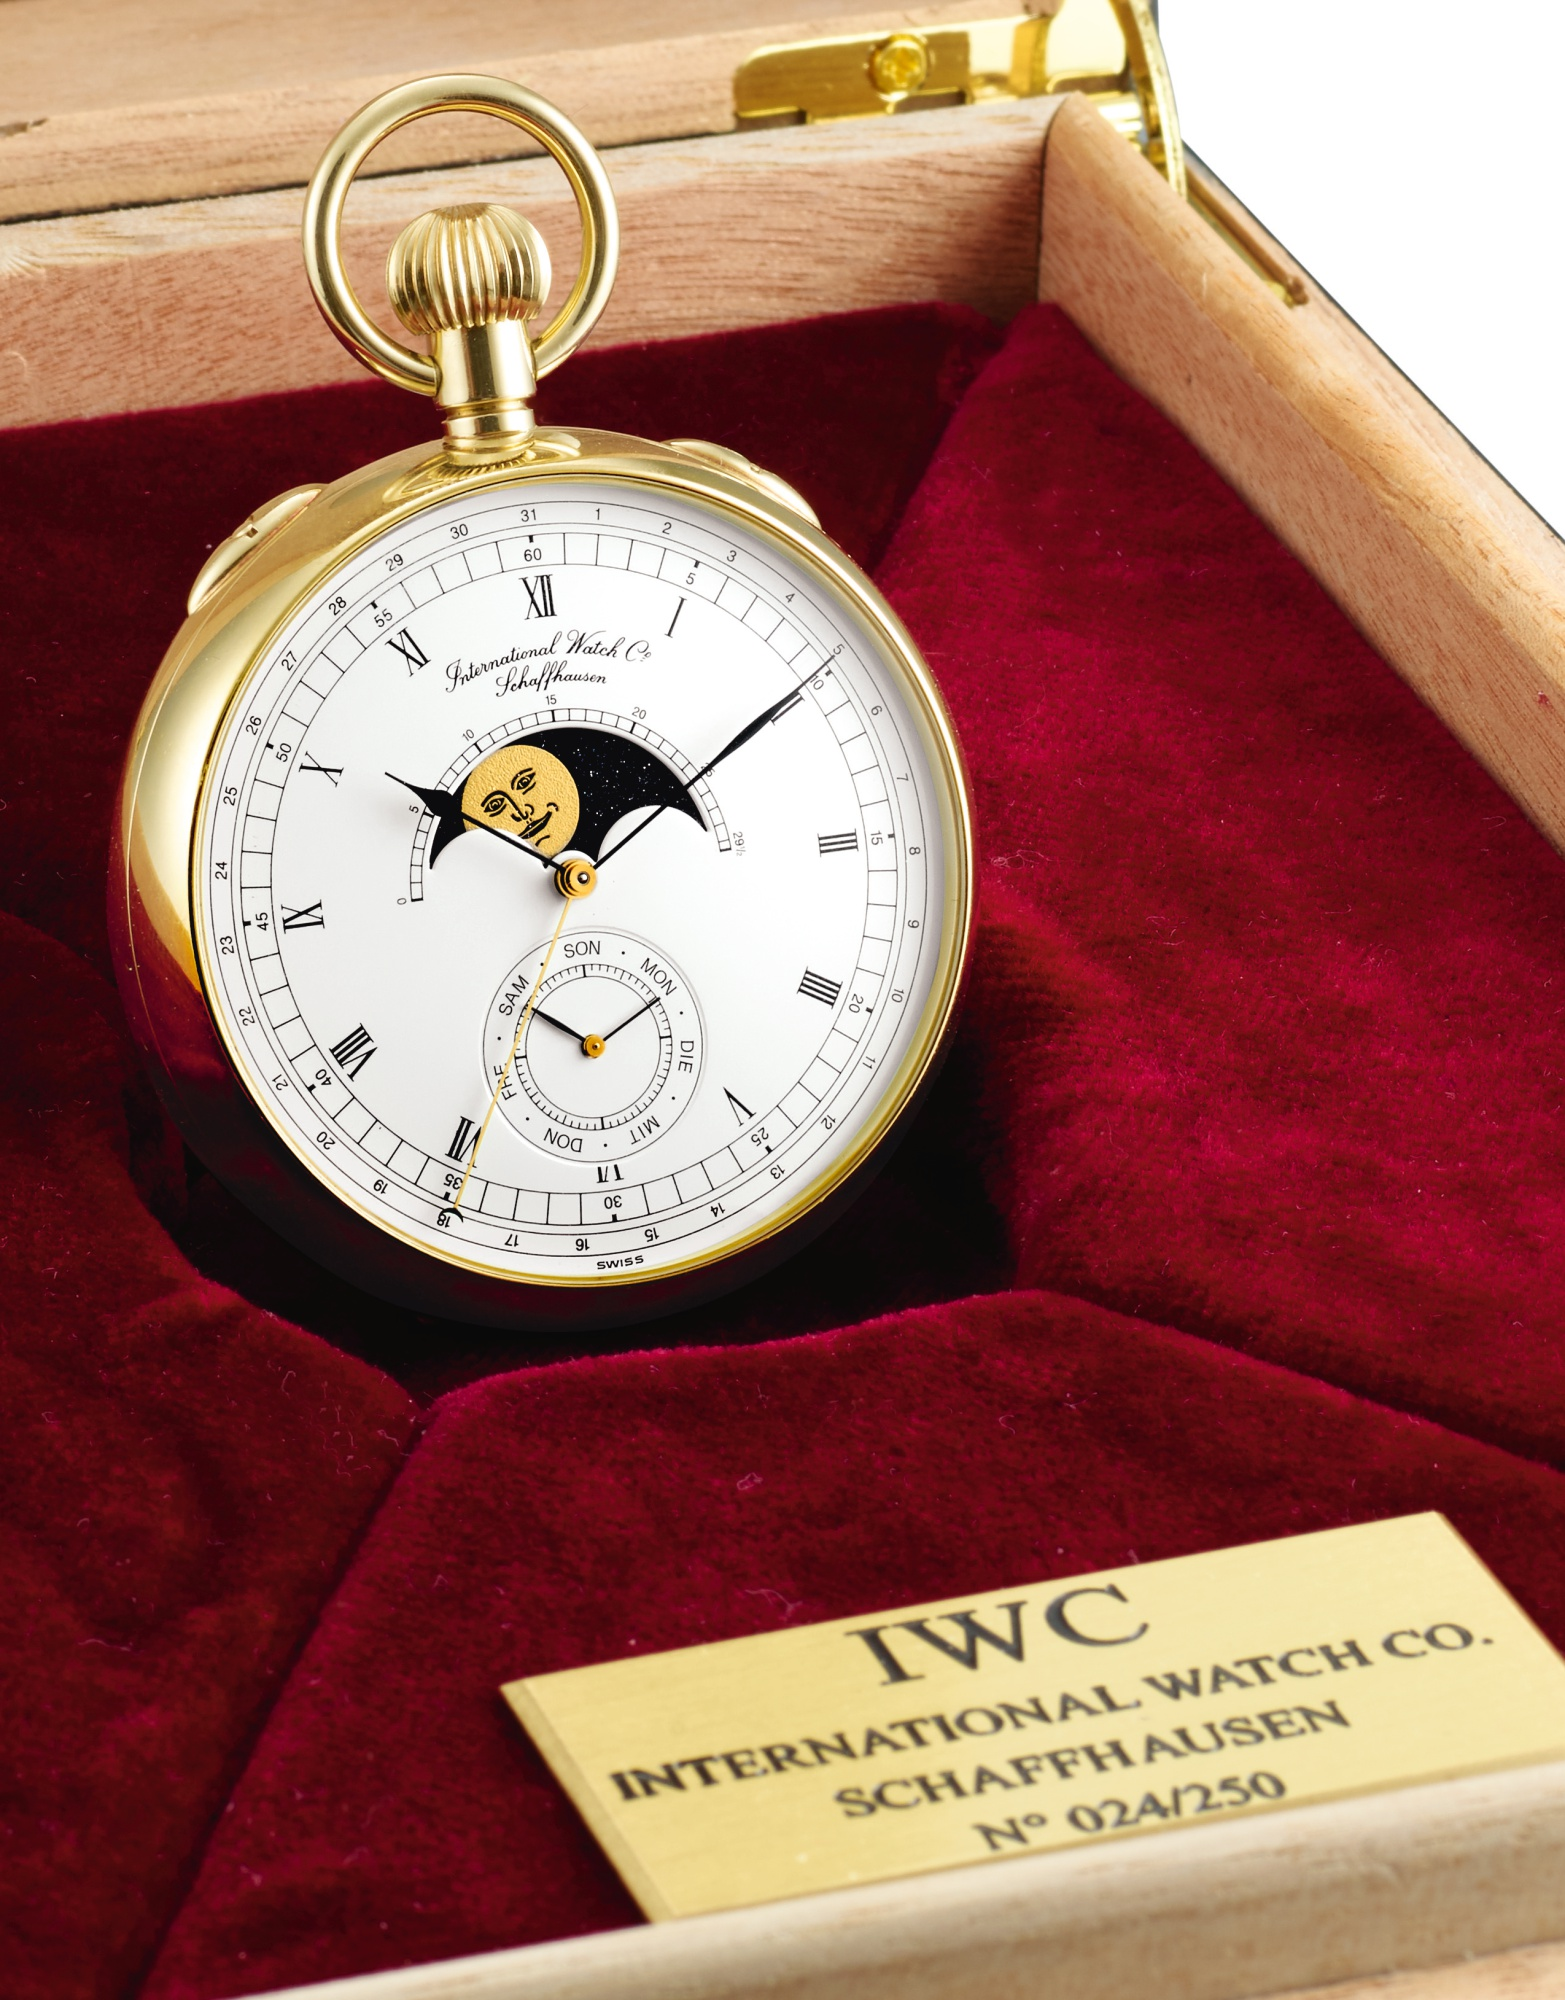 Crime or Sublime: Pocket watches in 2020